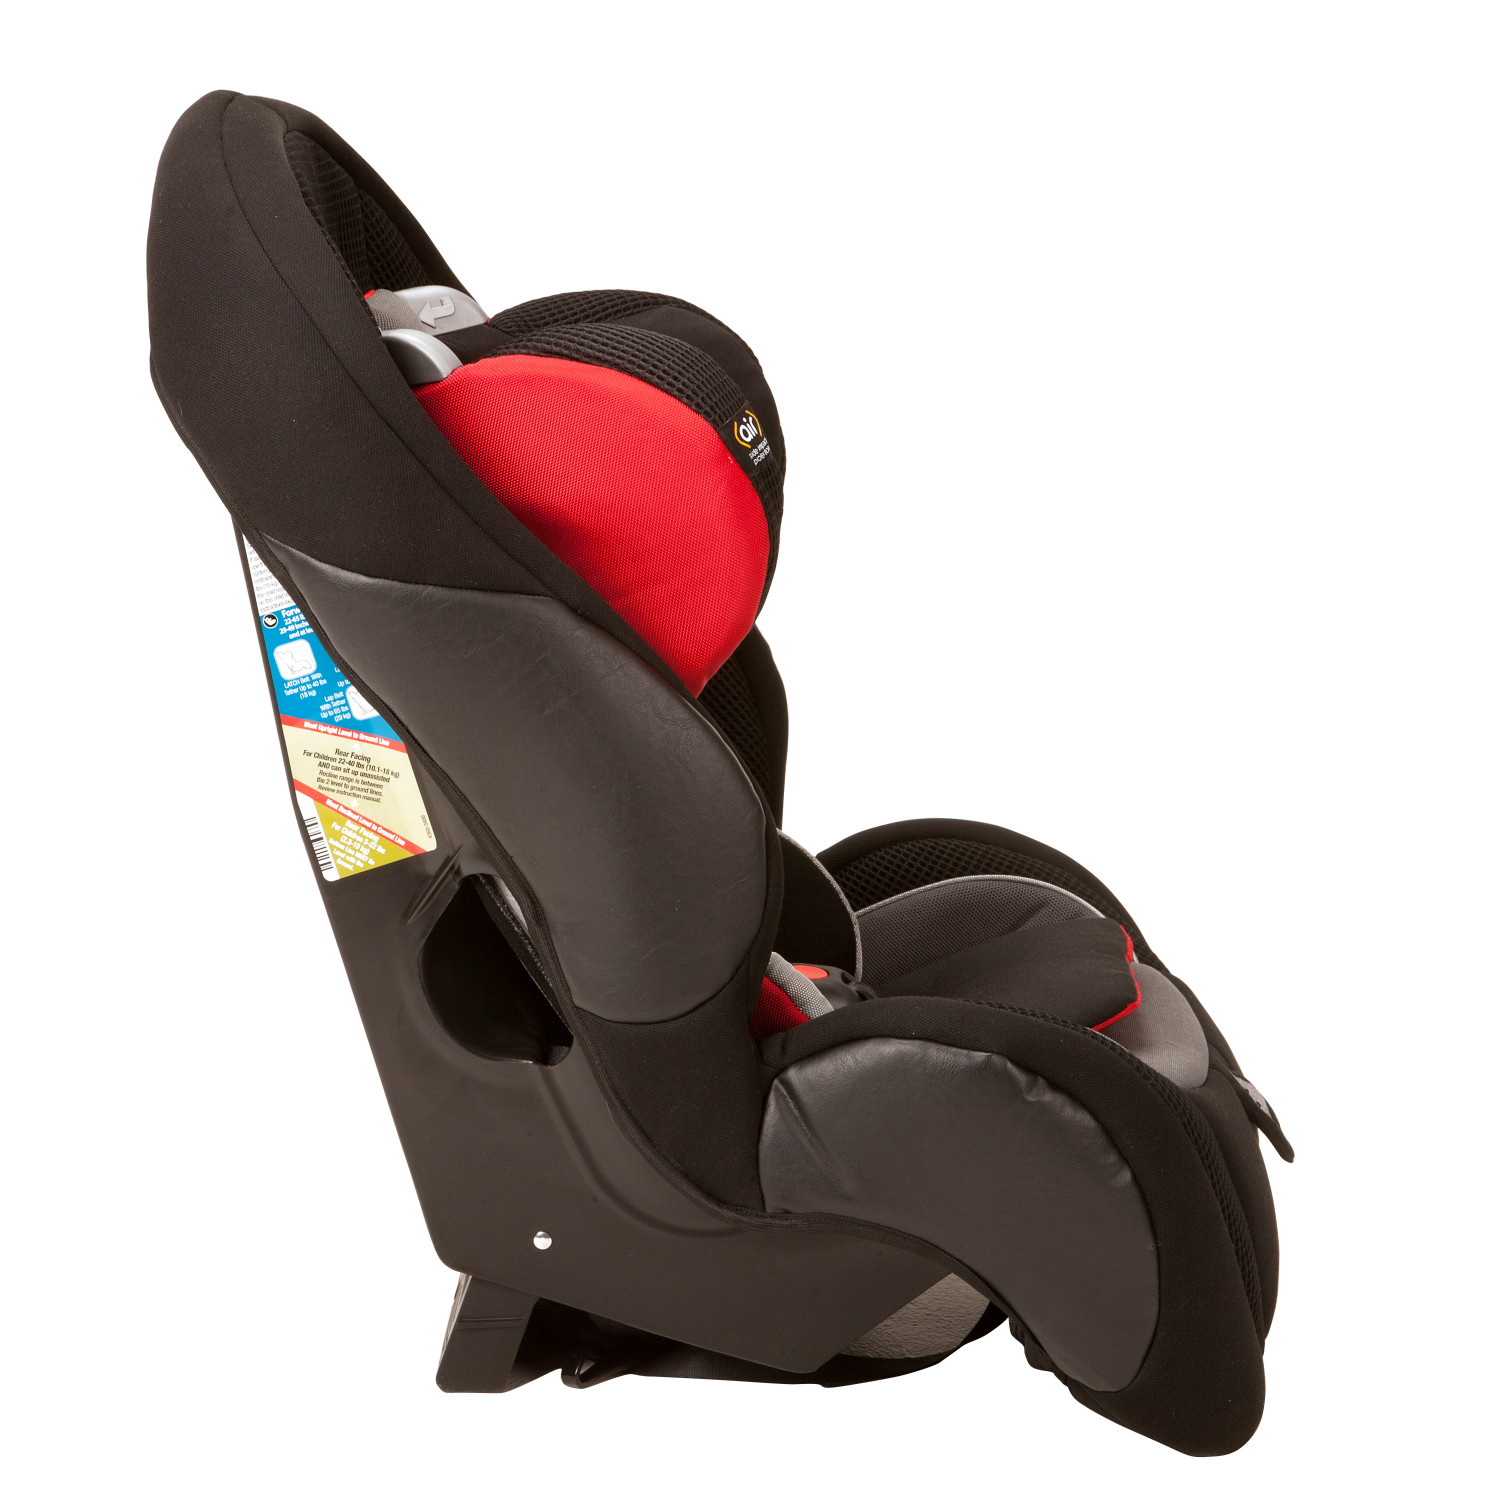 Safety-1st-Complete-Air-65-Convertible-Car-Seat thumbnail 40